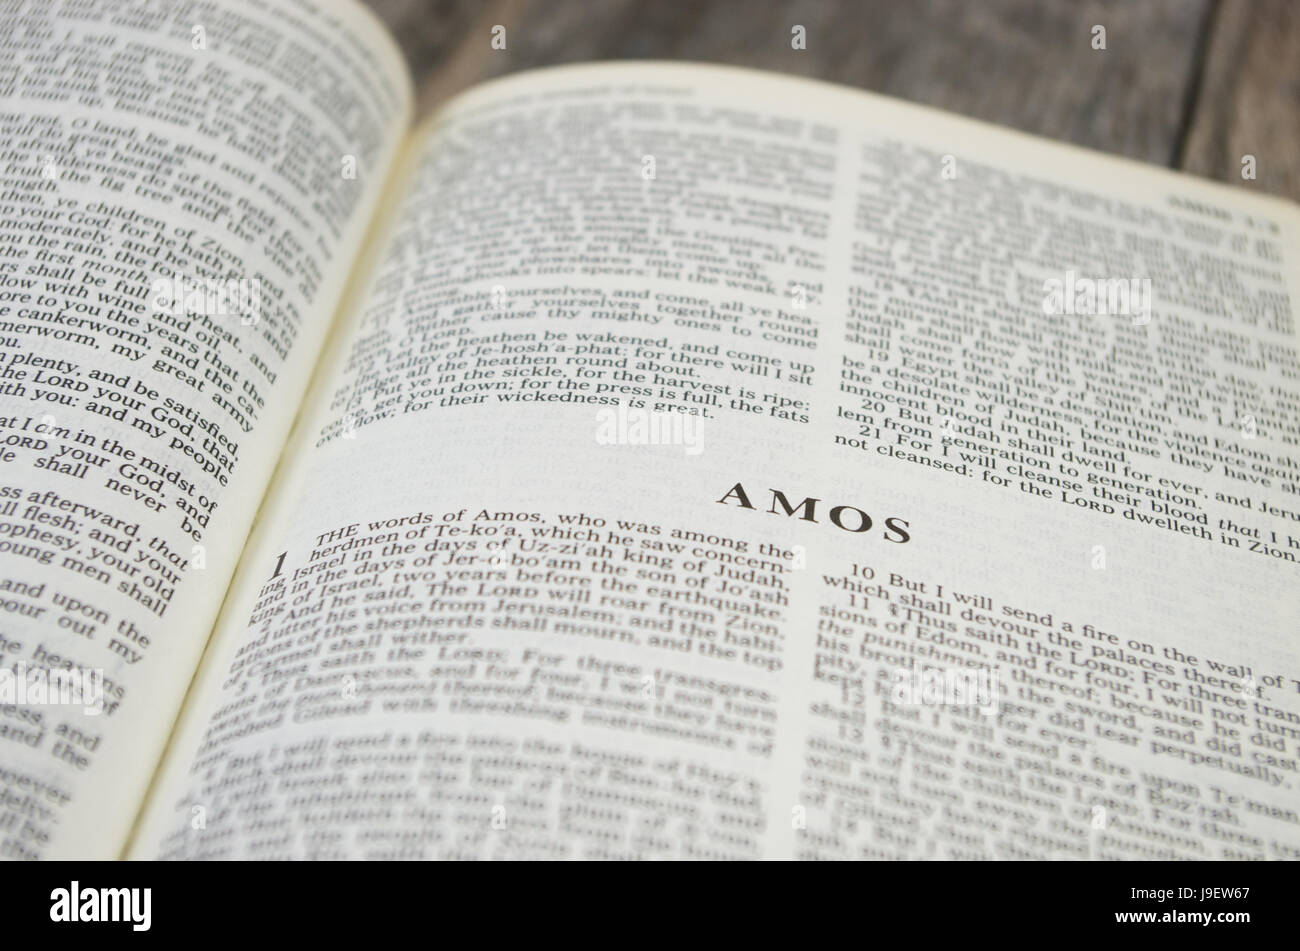 Title page for the book of Amos in the Bible – King James Version - Stock Image